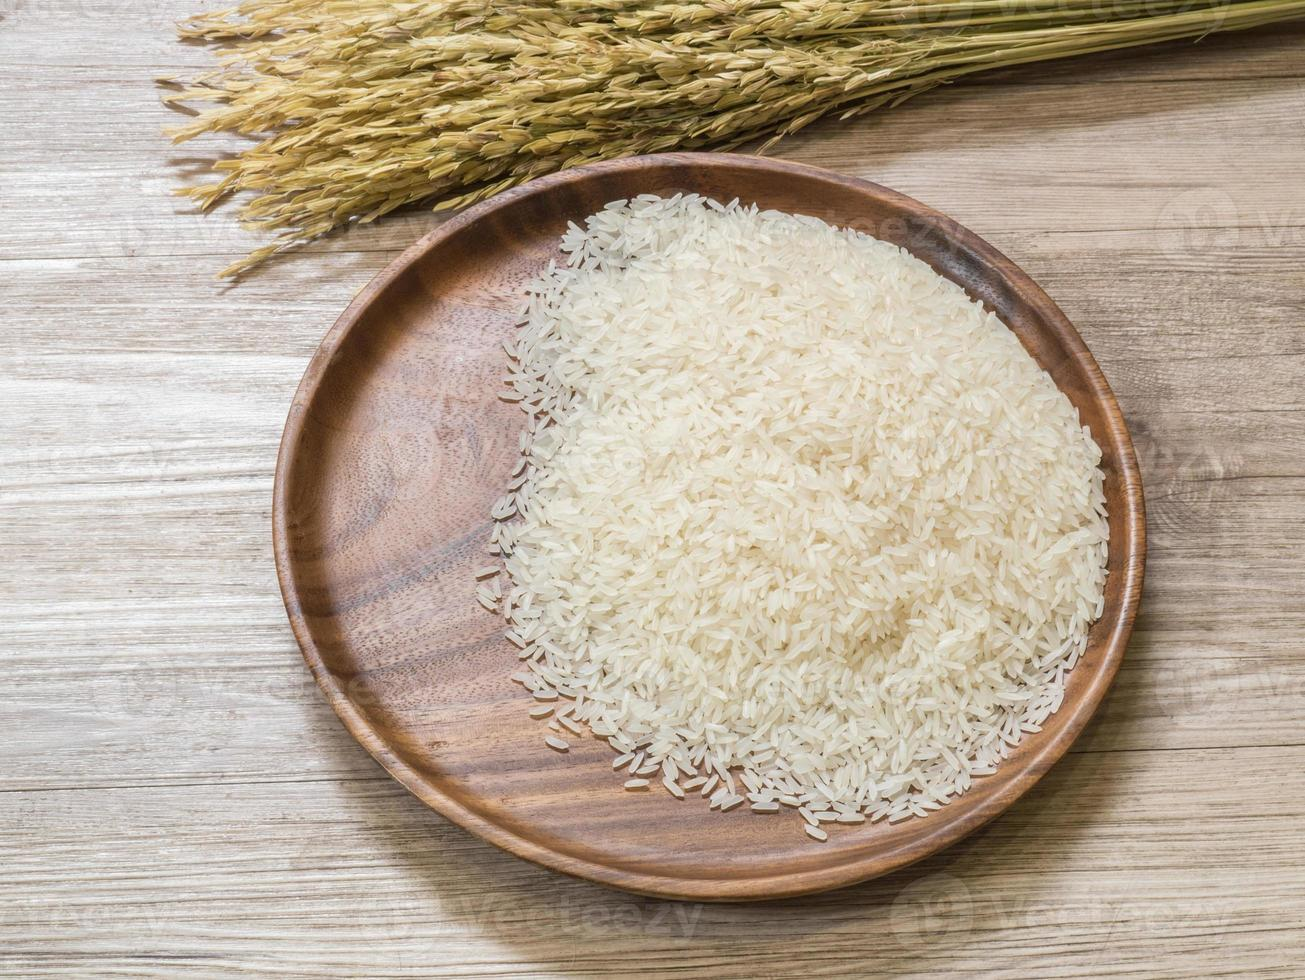 White rice on the wooden plate and rice plant photo